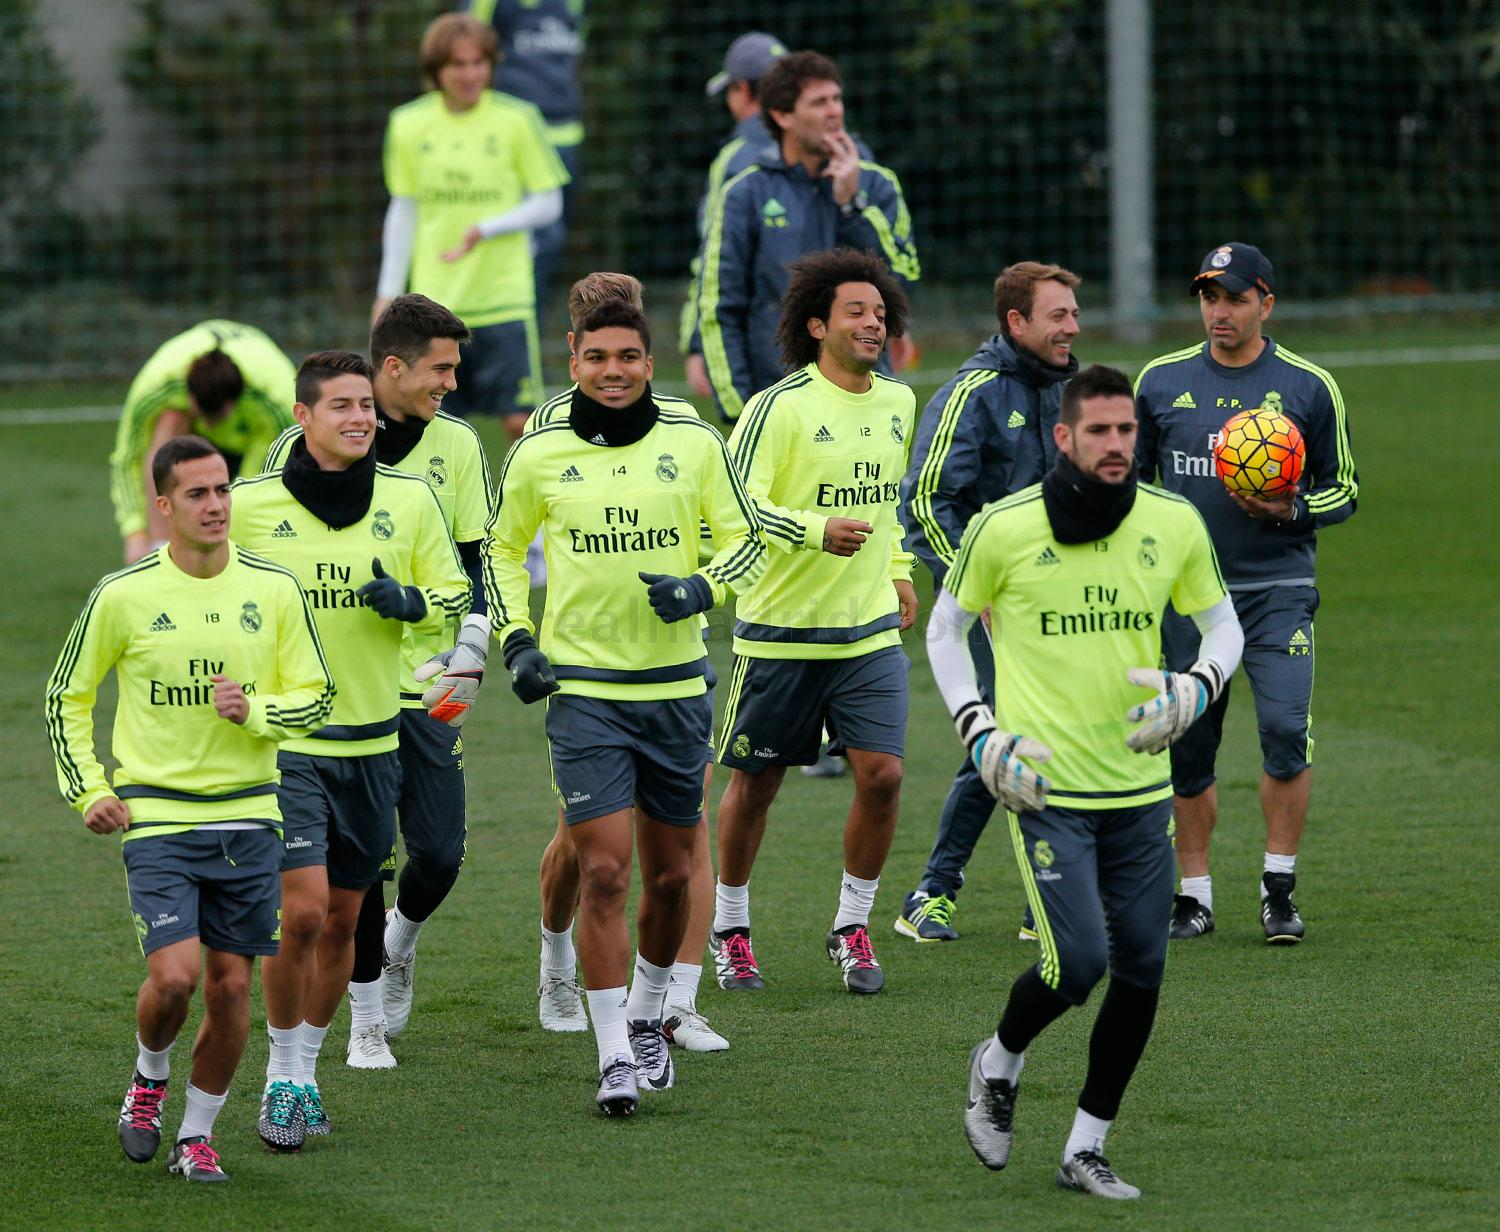 Real Madrid - Entrenamiento vespertino del Real Madrid - 27-12-2015